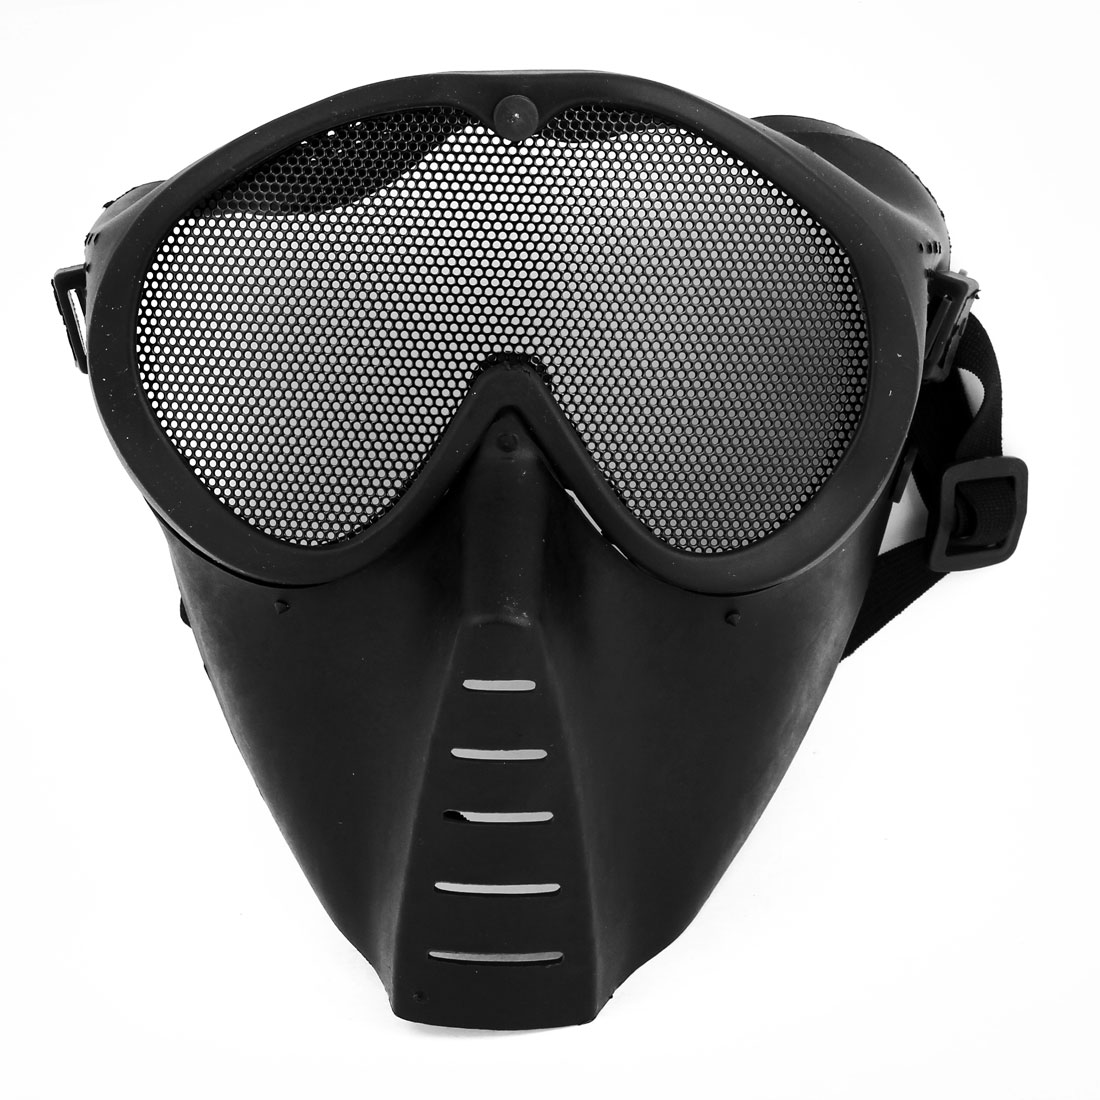 Portable-Black-Full-Face-Eye-Protective-Mask-Goggles-for-Wargame